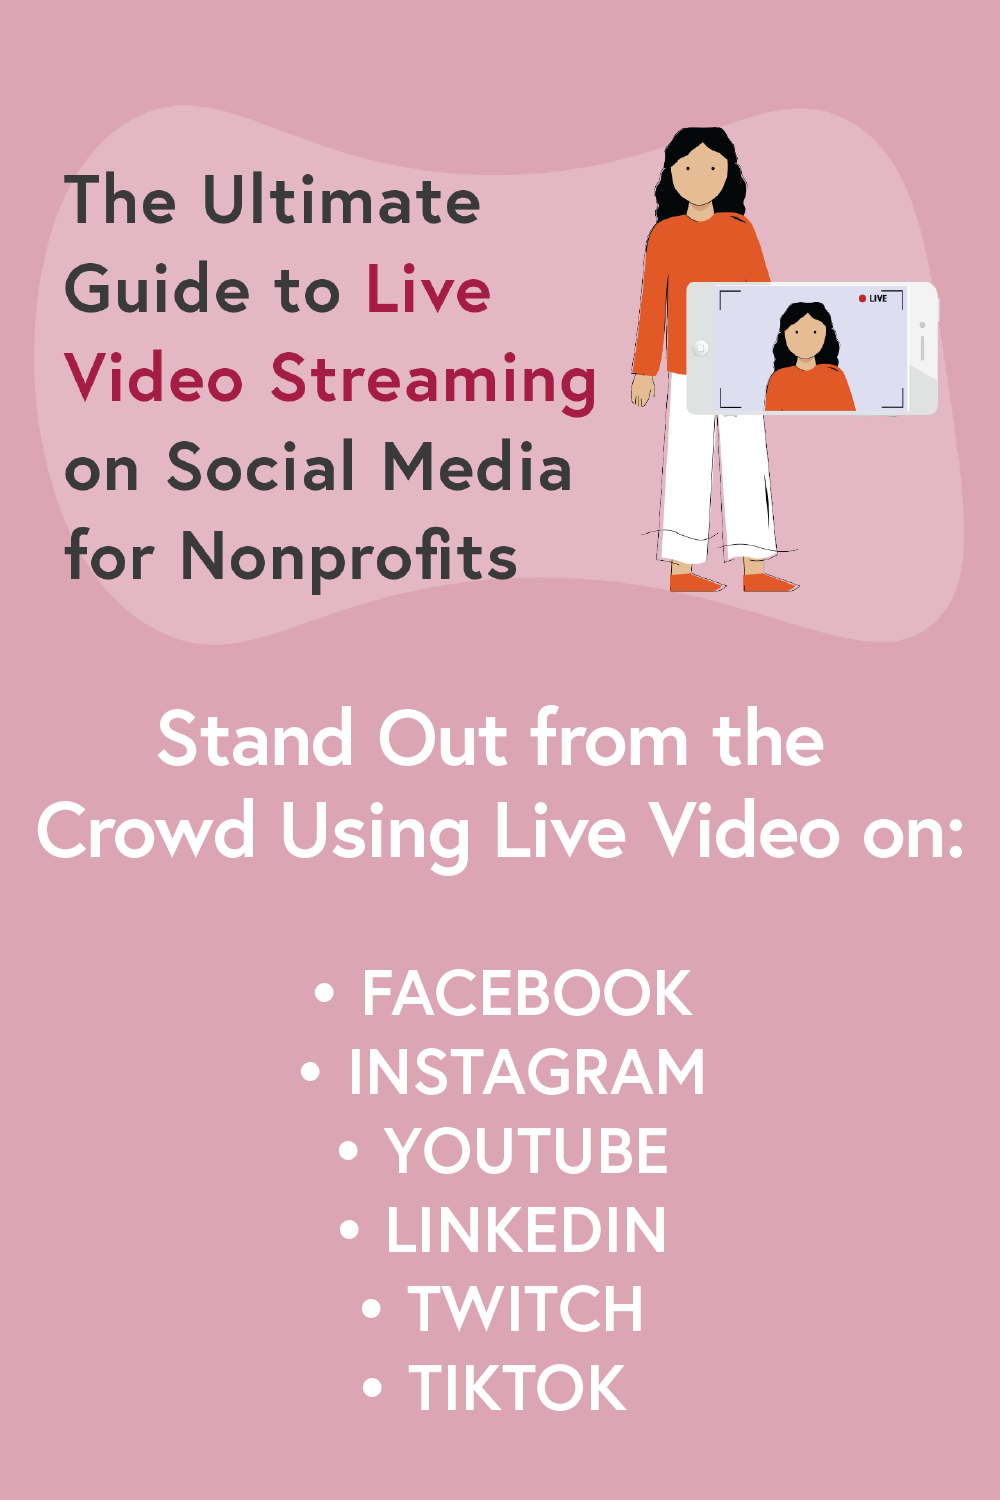 The Ultimate Guide To Live Video Streaming On Social Media For Nonprofits Social Media Live Video Streaming Nonprofit Social Media